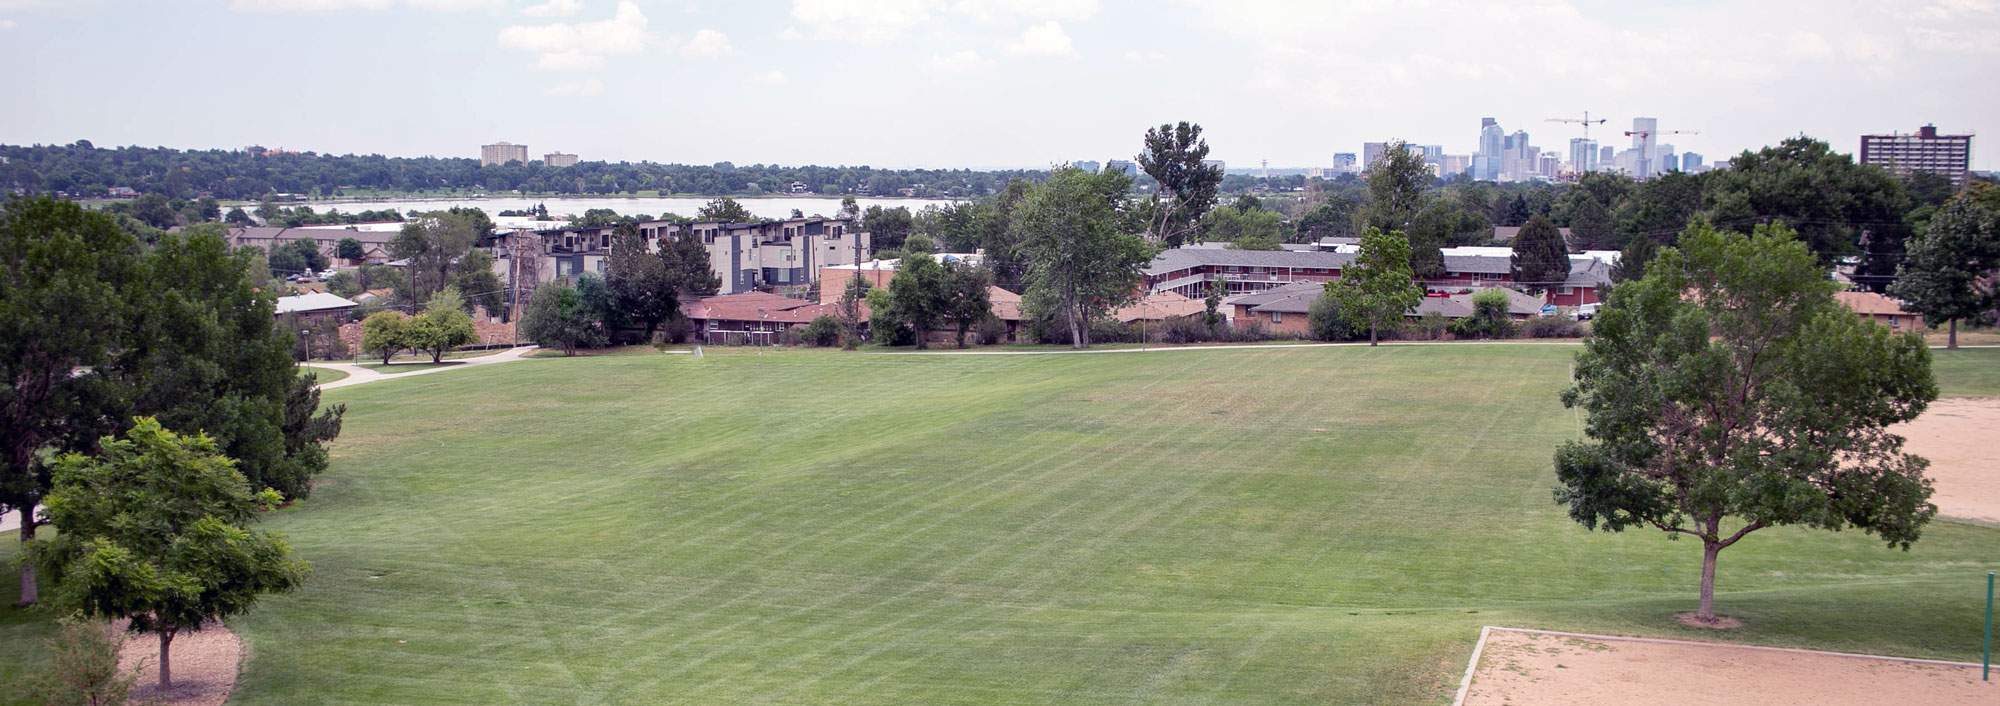 Located next to Walker-Branch Park, Harlan Row offers unobstructed views of Sloan's Lake and Downtown Denver to the east.